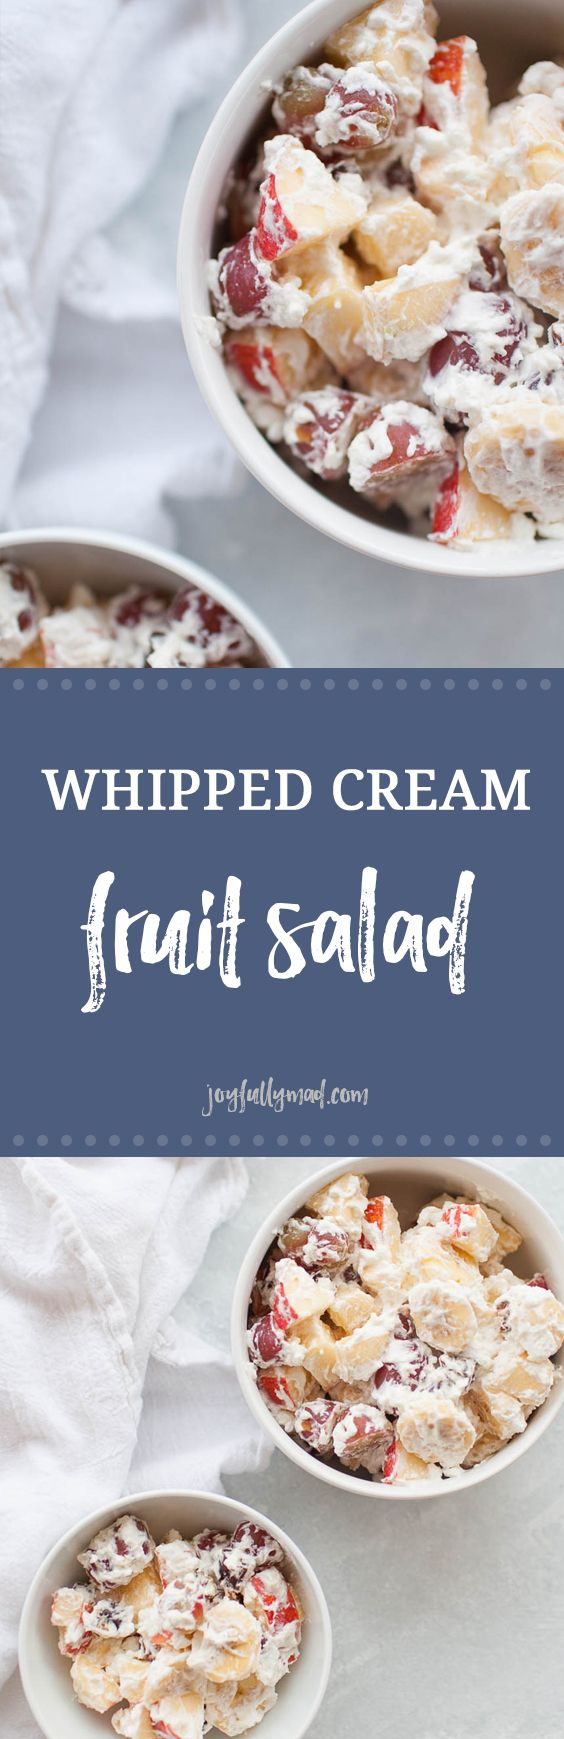 Whipped cream fruit salad is the perfect holiday side dish or dessert! It's made with fresh fruit like grapes, bananas and apples and homemade whipped cream, sweetened with a bit of honey, so this dish is perfect for the whole family. Serve with your turkey holiday dinners or as a part of your regular weeknight dinner menu. #falldessert #desserts